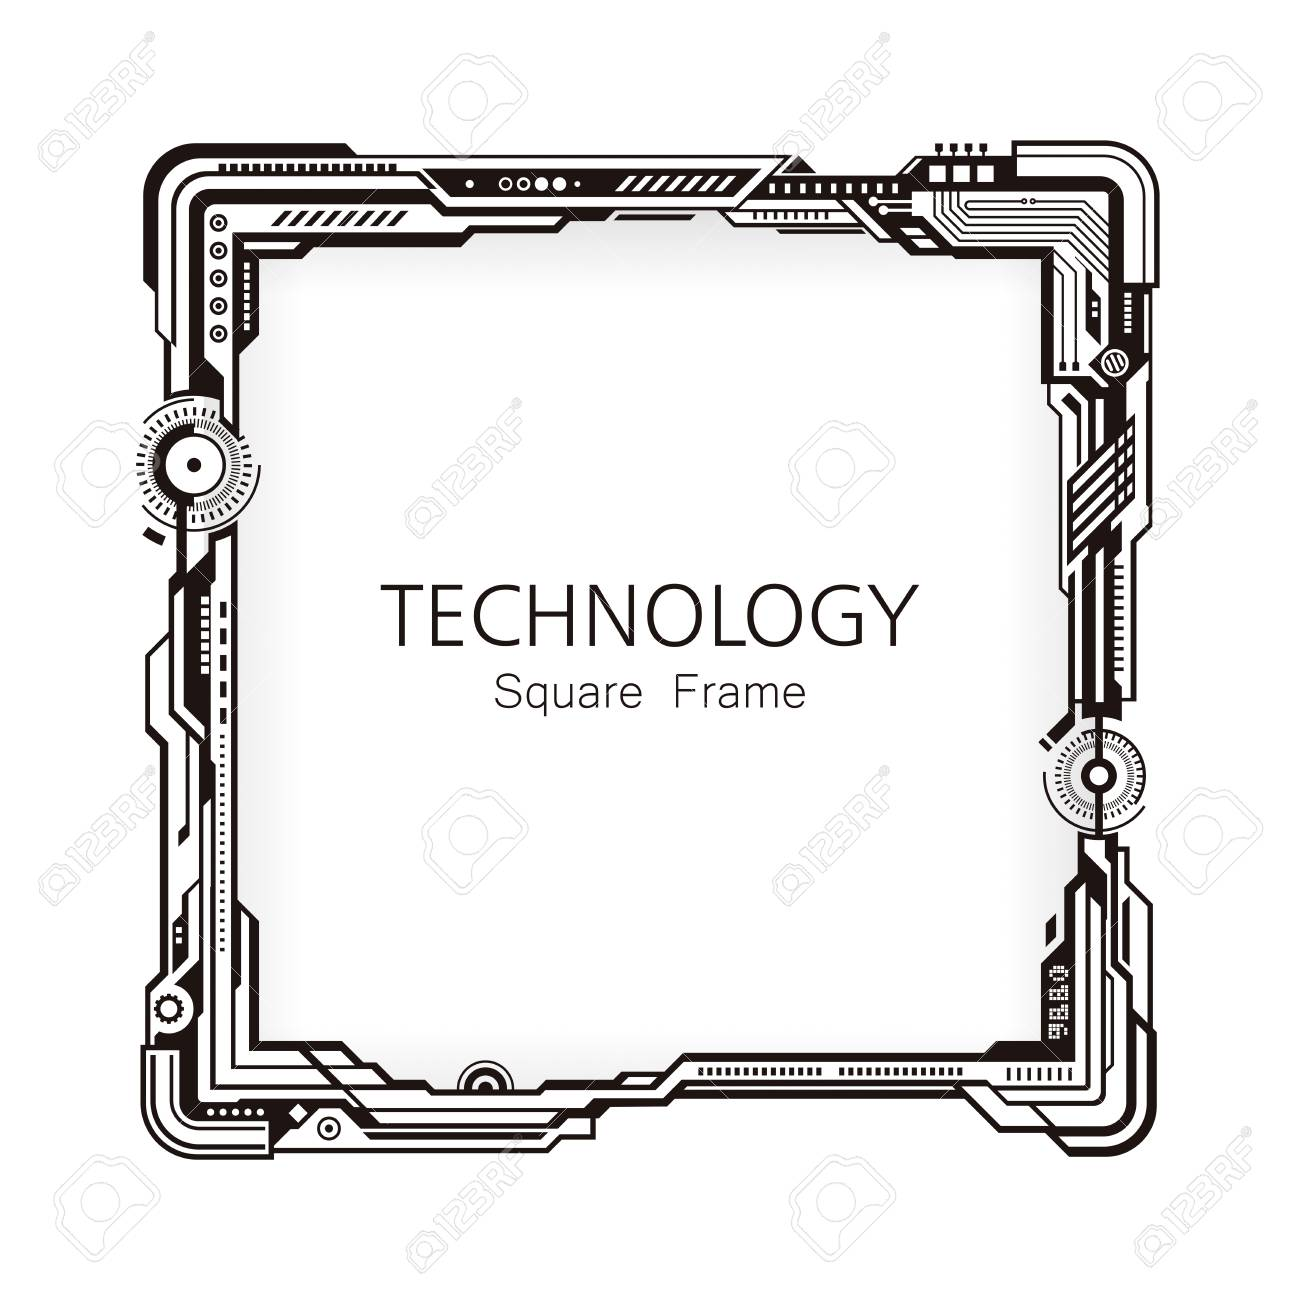 Technology Cliparts Border Free Download Clip Art.